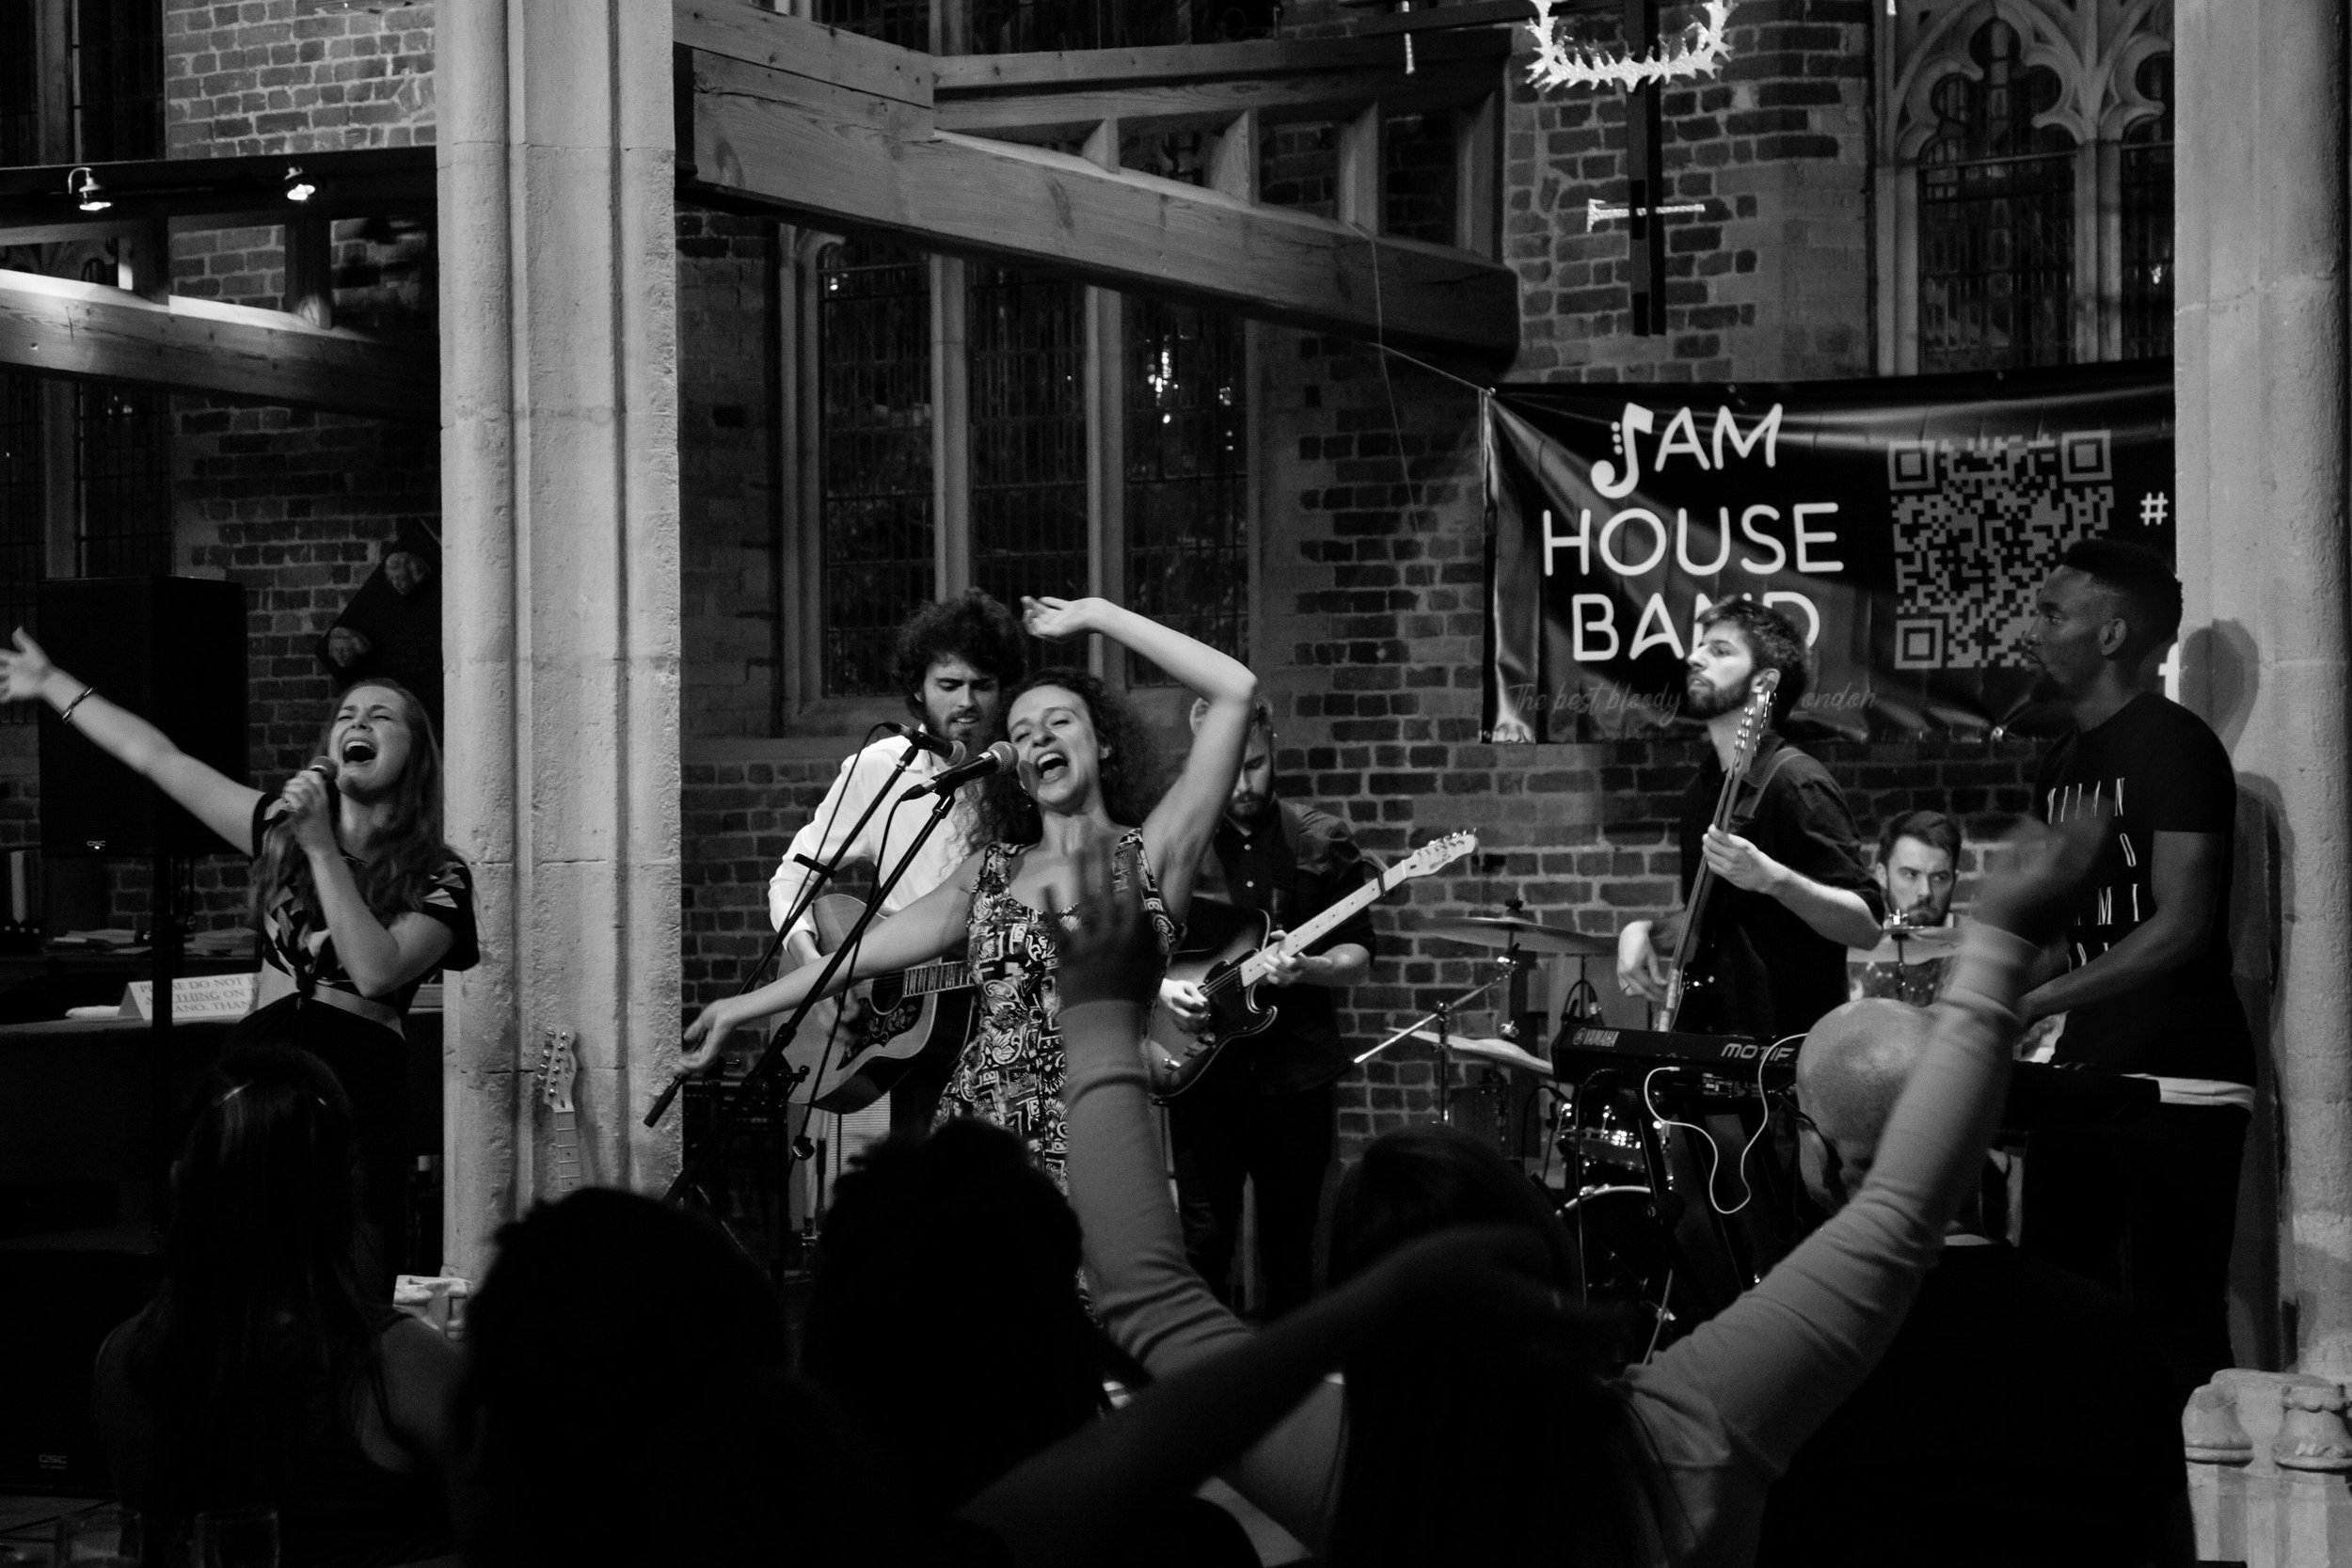 House Band and crowd having an equally amazing time